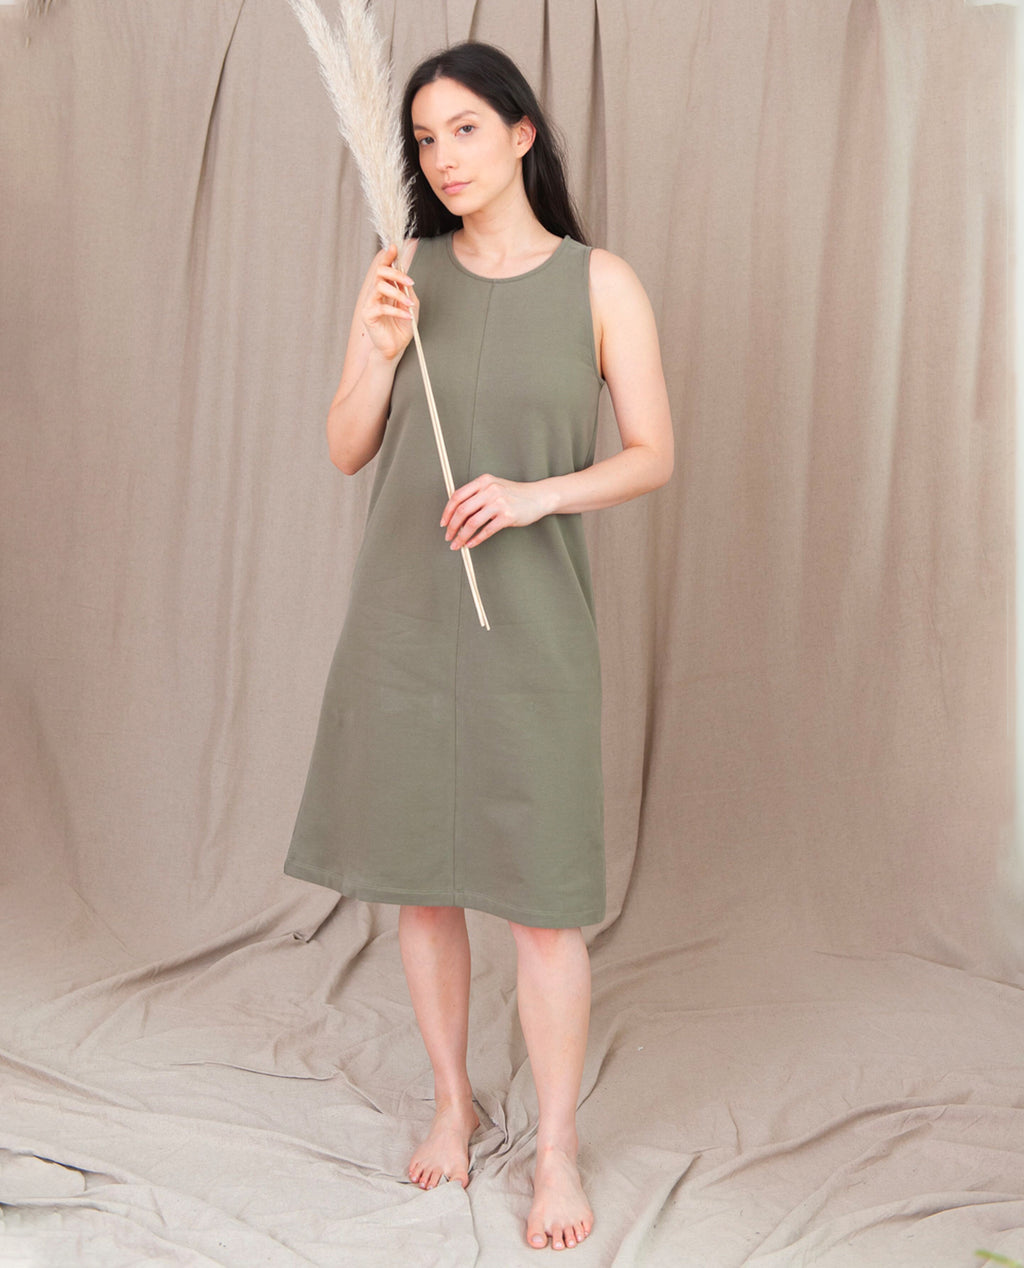 MARLEY Organic Cotton Dress In Khaki